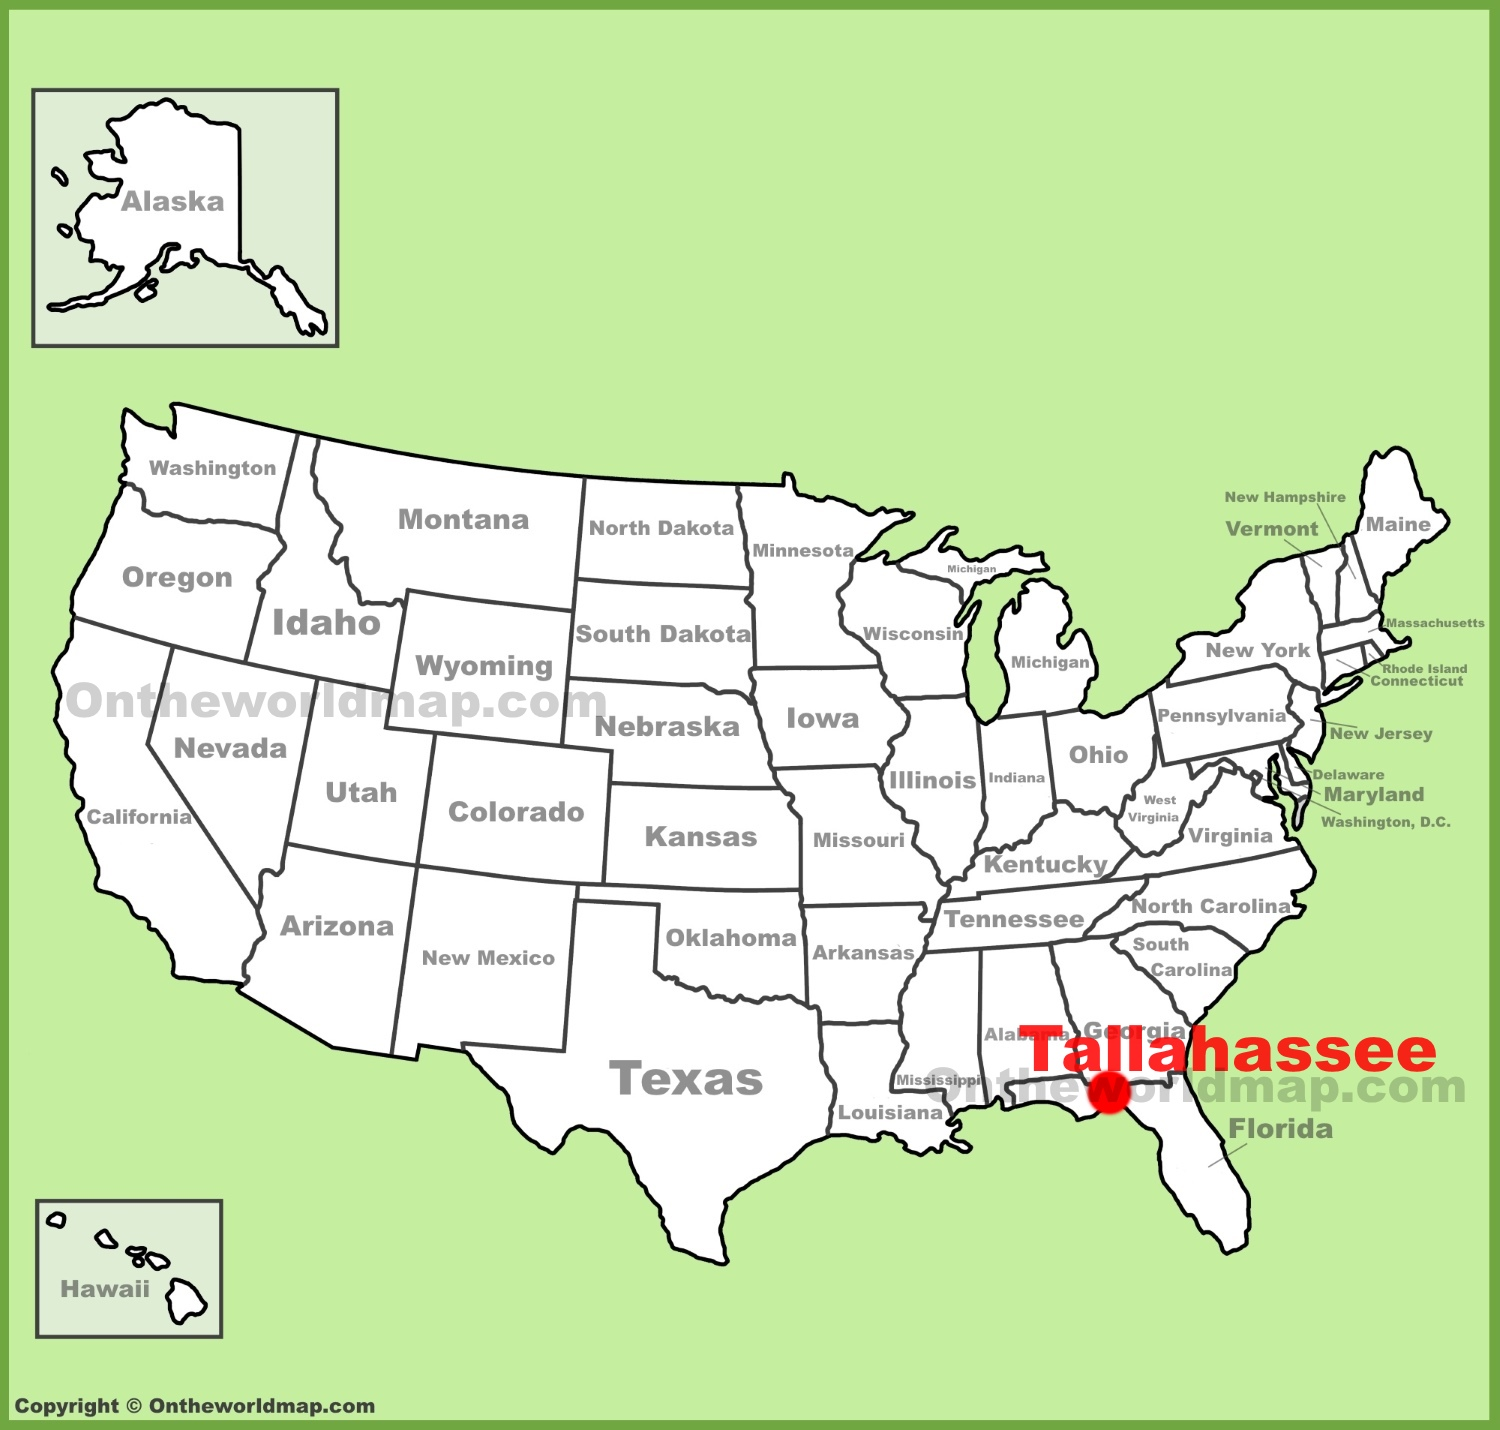 Tallahassee location on the US Map